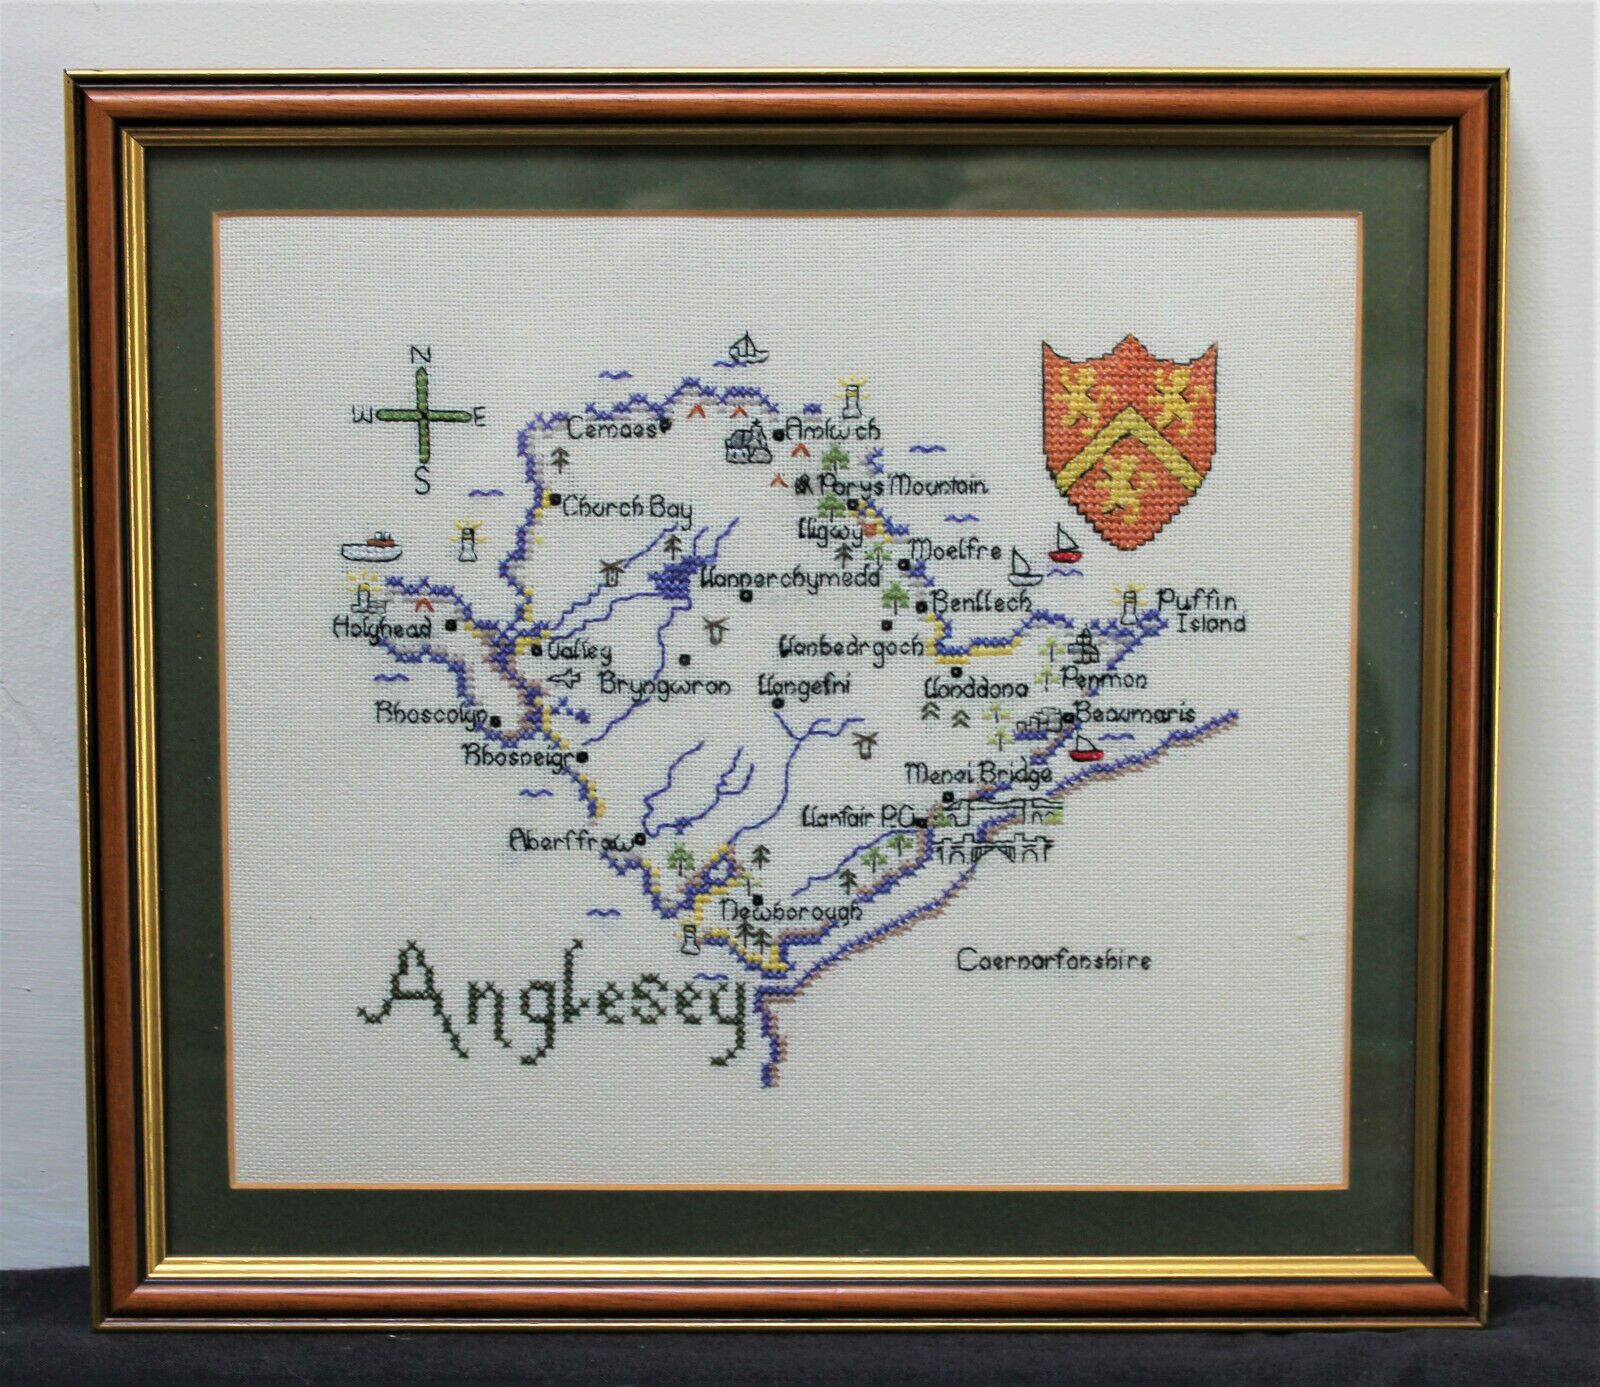 Wooden Framed Completed Anglesey Ynys Mon Cross Stitch Heritage Stitchcraft Map